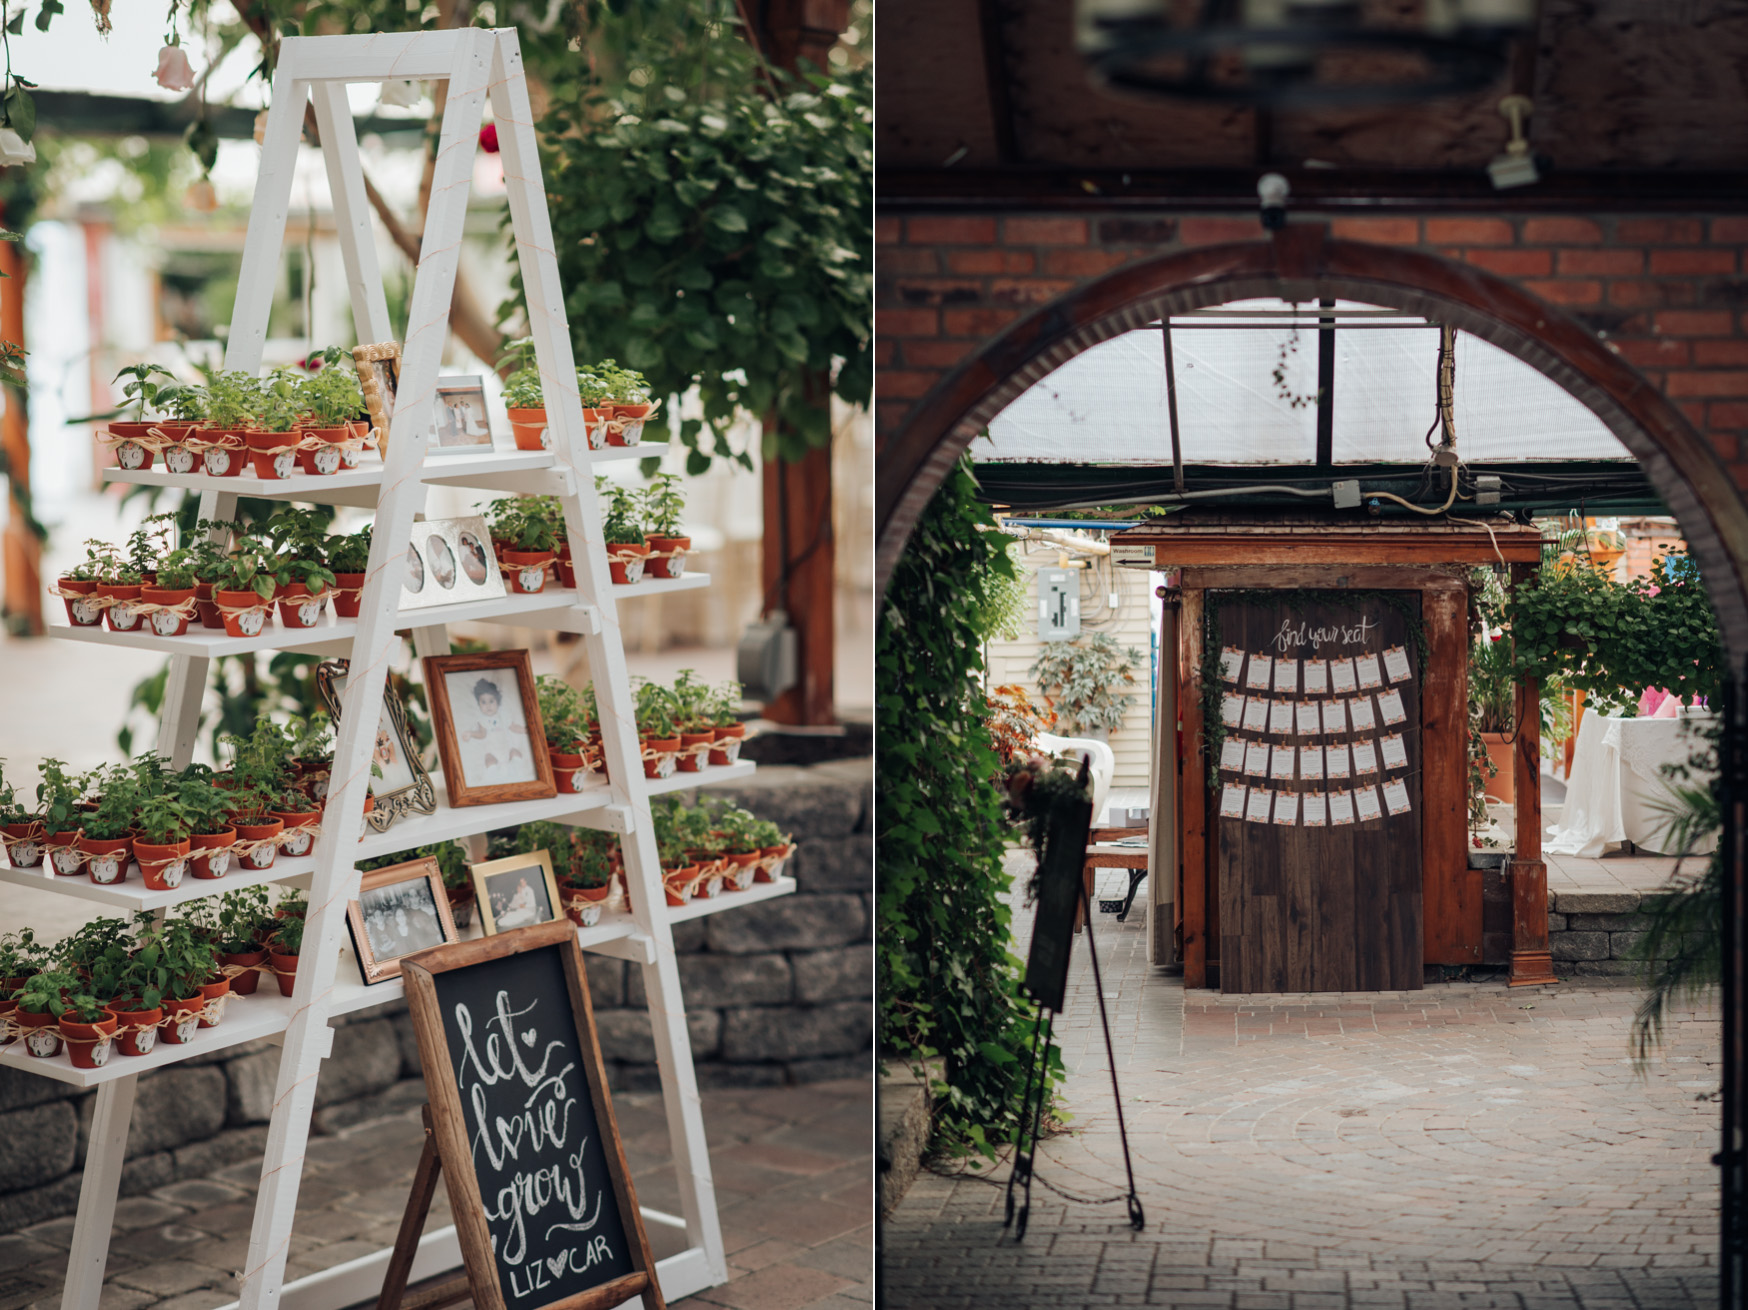 Decor and DIY details of a Madsen's Greenhouse Wedding in GTA Newmarket